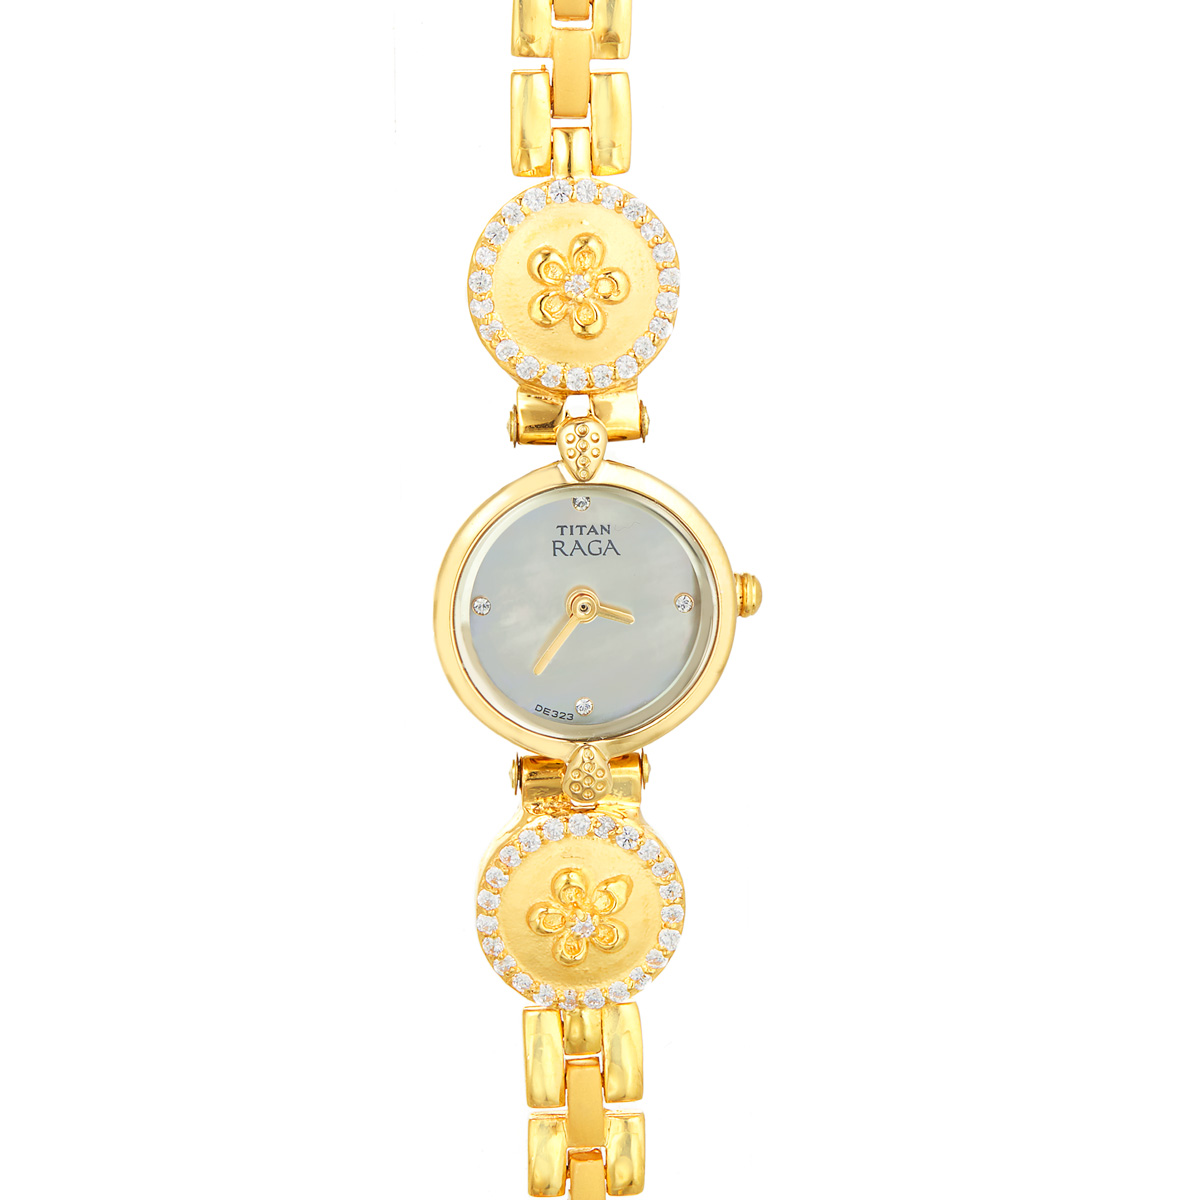 An Exotic Women's Watch